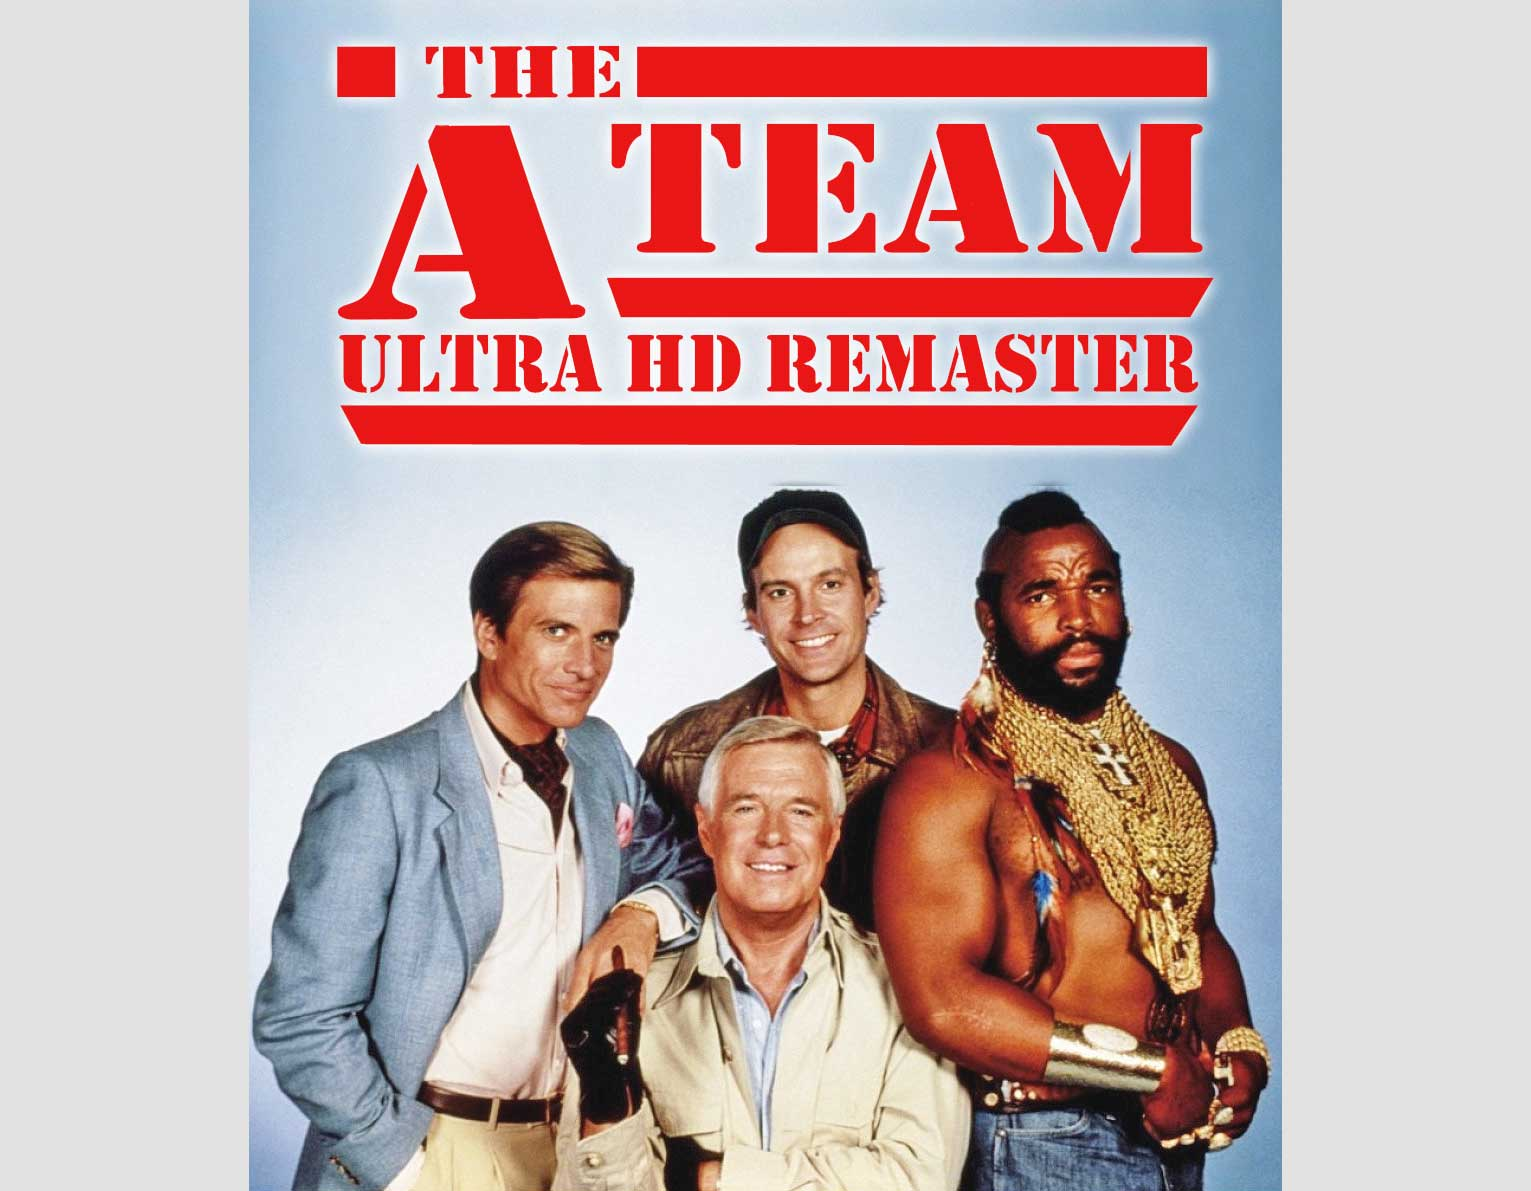 A-Team Ultra HD Remaster